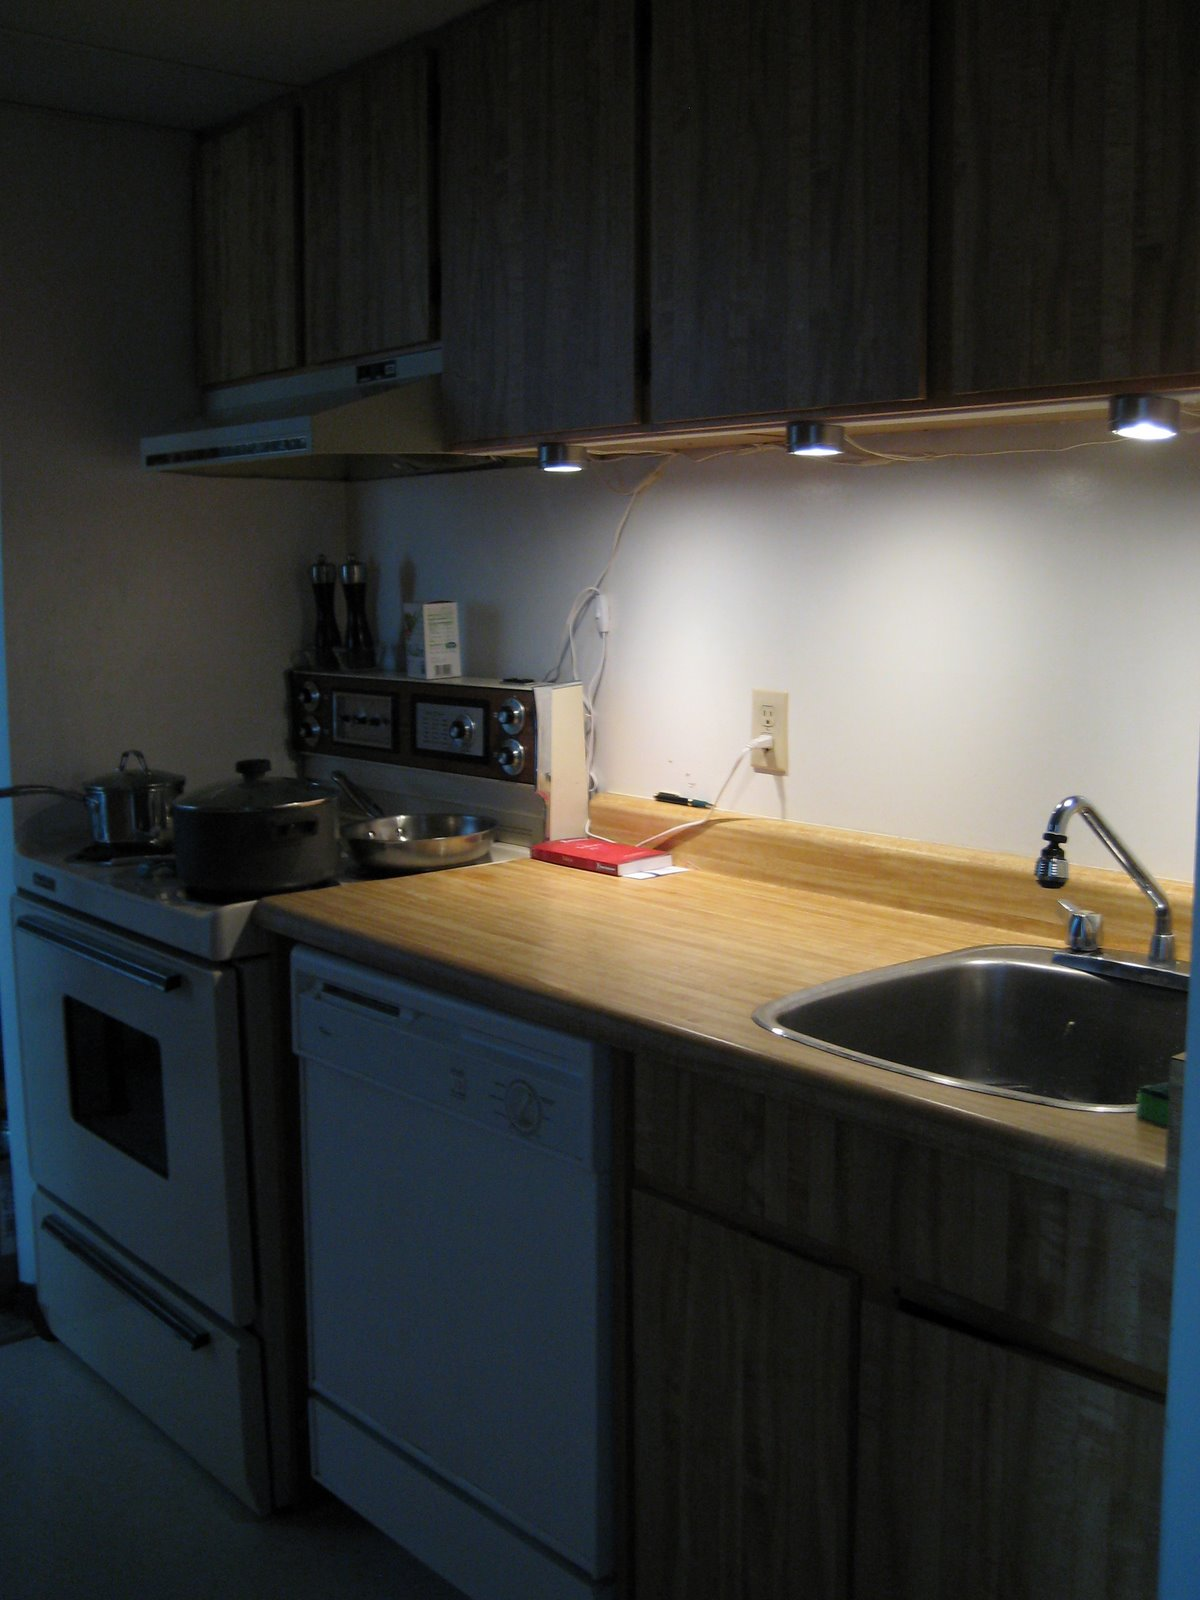 ikea lighting kitchen. I Then Attached The Halogen Portion Of Lights, Clipped Wires And Switches Up Out Way, Now Have Some Nice Task Lighting, Ikea Lighting Kitchen H